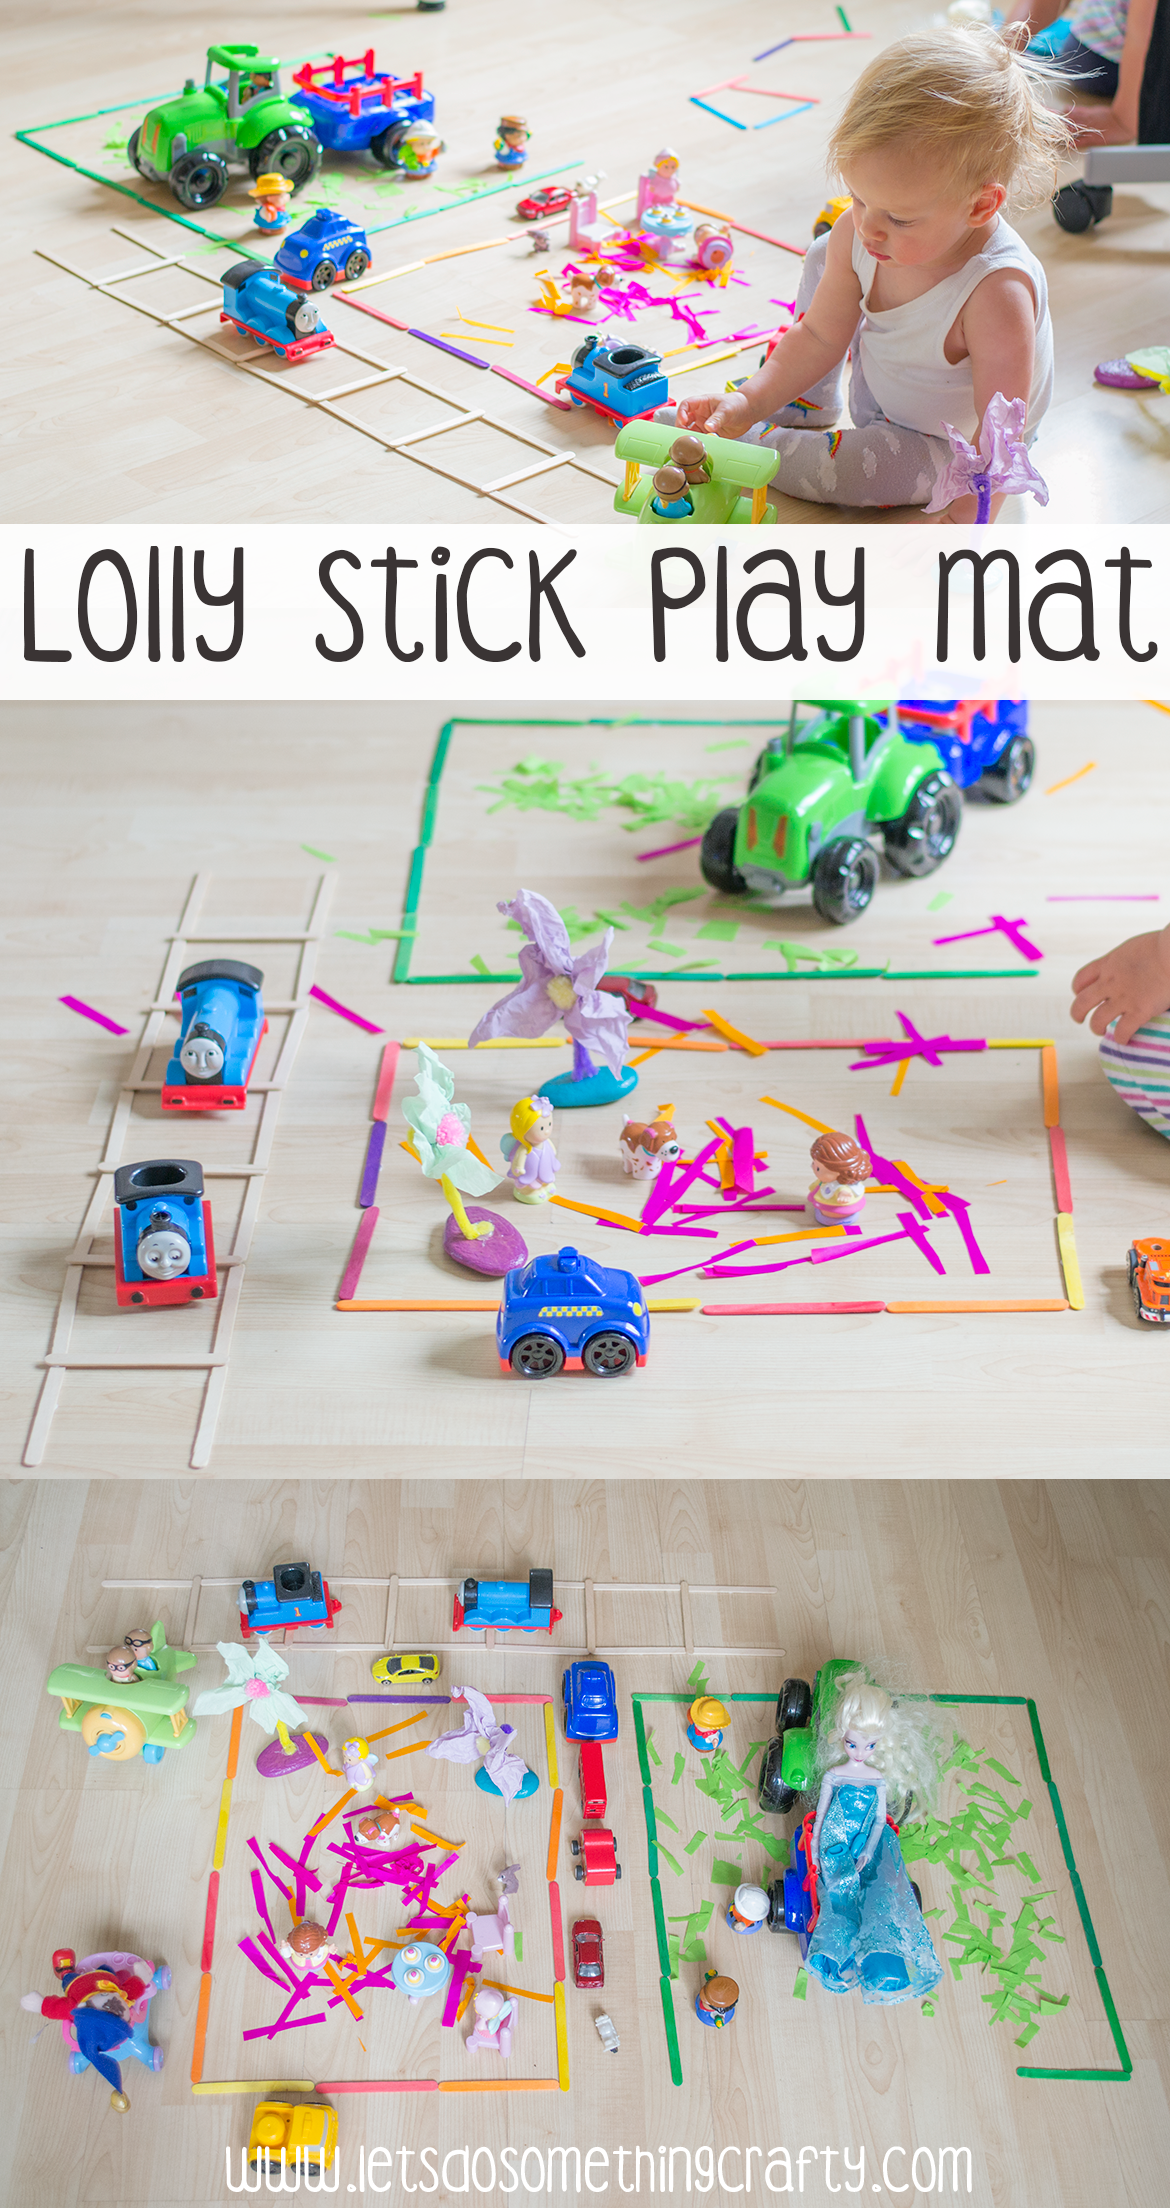 rainy day activities lolly stick play mat